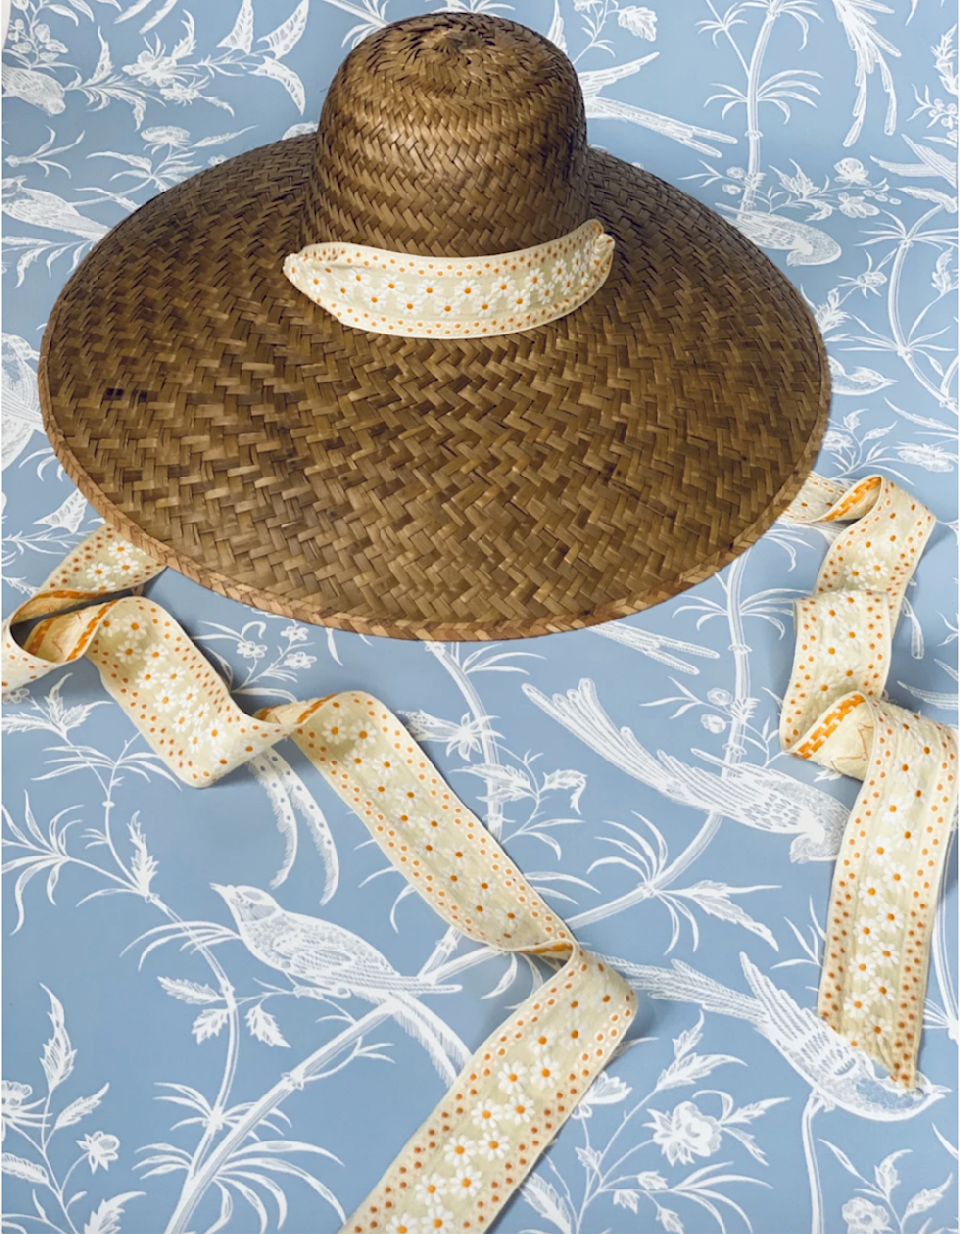 """<p><strong>Sarah Bray Bermuda</strong></p><p>sarahbraybermuda.com</p><p><strong>$150.00</strong></p><p><a href=""""https://sarahbraybermuda.com/products/daisy-sunhat"""" rel=""""nofollow noopener"""" target=""""_blank"""" data-ylk=""""slk:Shop Now"""" class=""""link rapid-noclick-resp"""">Shop Now</a></p><p>Former <em>T&C </em>style writer Sarah Bray's eponymous collection of accessories and tabletop items are made entirely from antique, vintage, recycled, and biodegradable materials. She personally sourced the ribbons for this wide brim sun hat (which is constructed from palm tree leaves) from flea markets, antique dealers, and estate sales.</p>"""